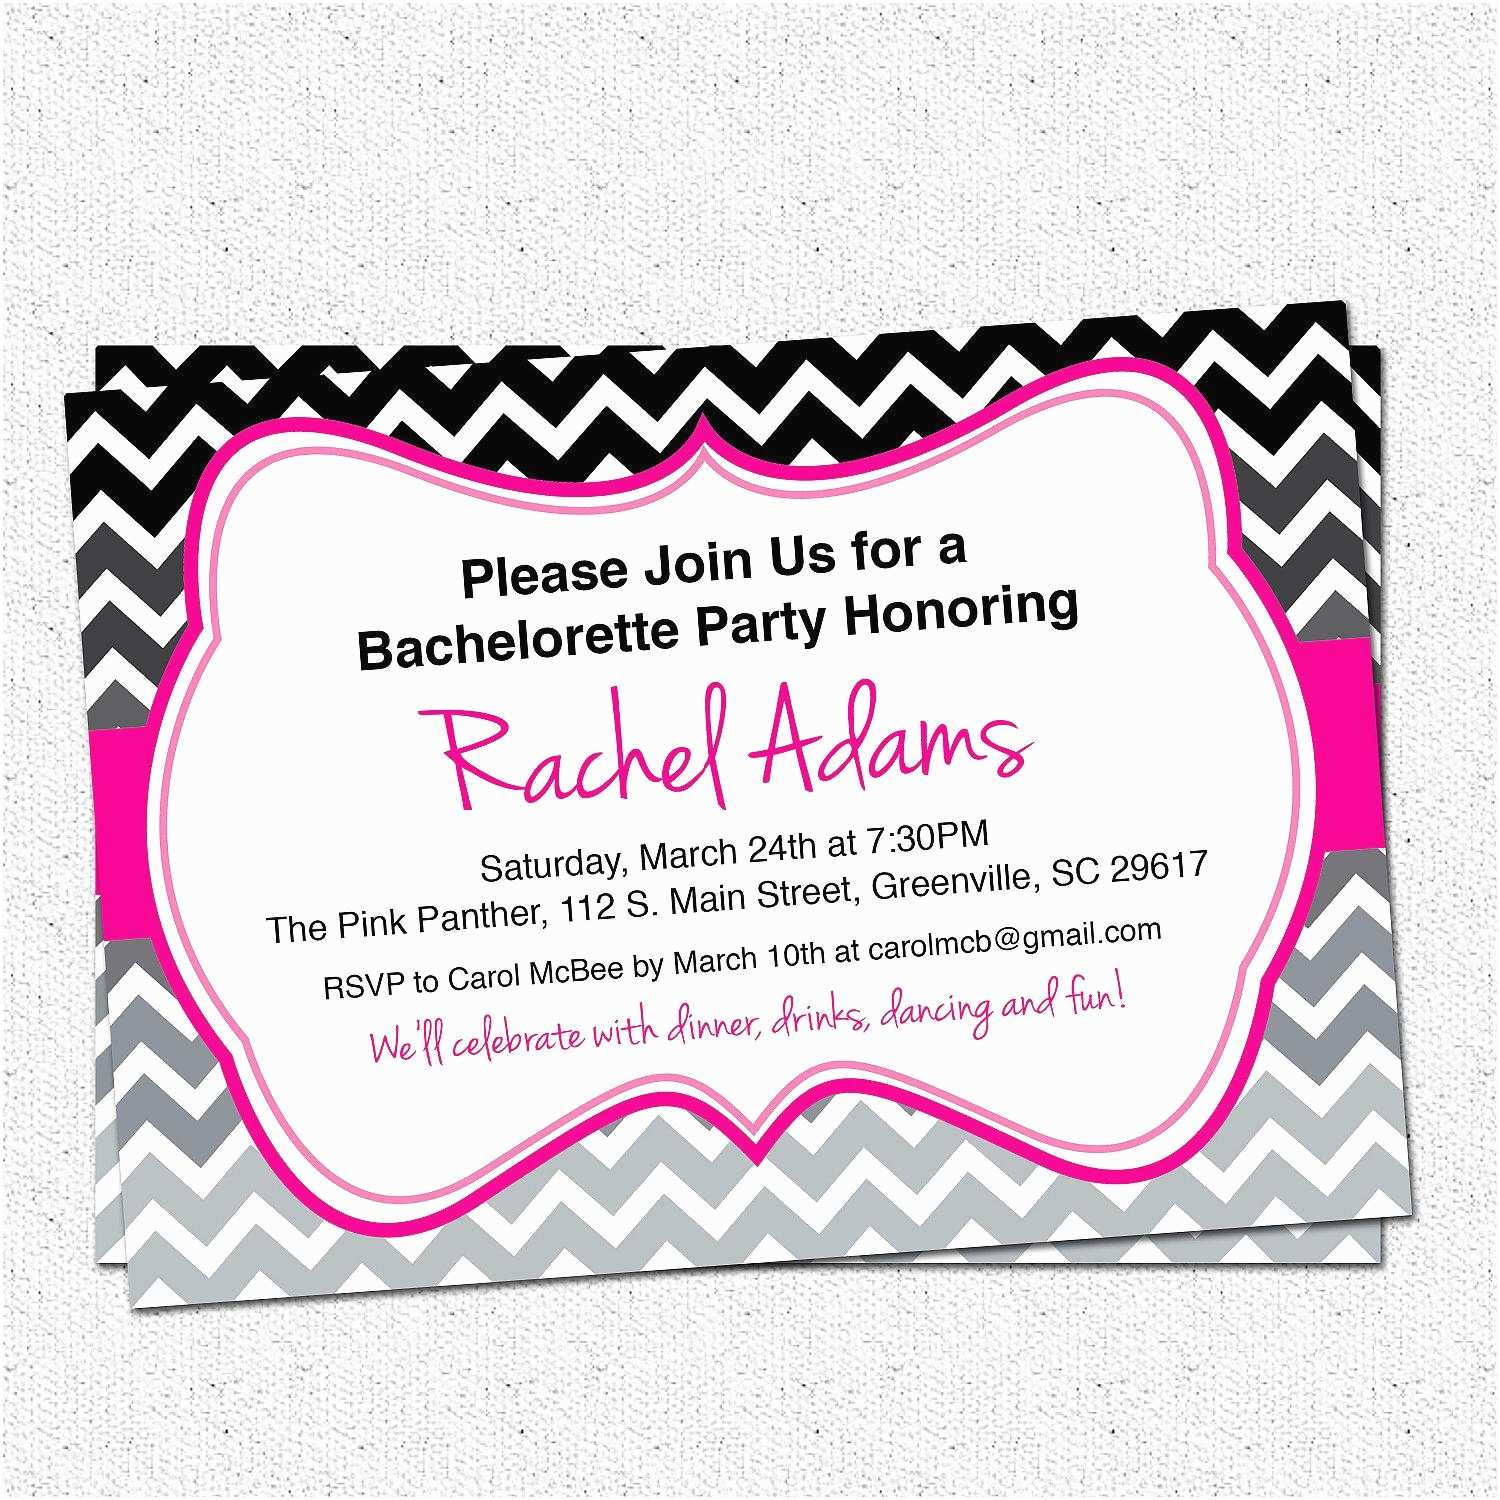 Free Bachelorette Party Invitations Bachelor Party Invitations